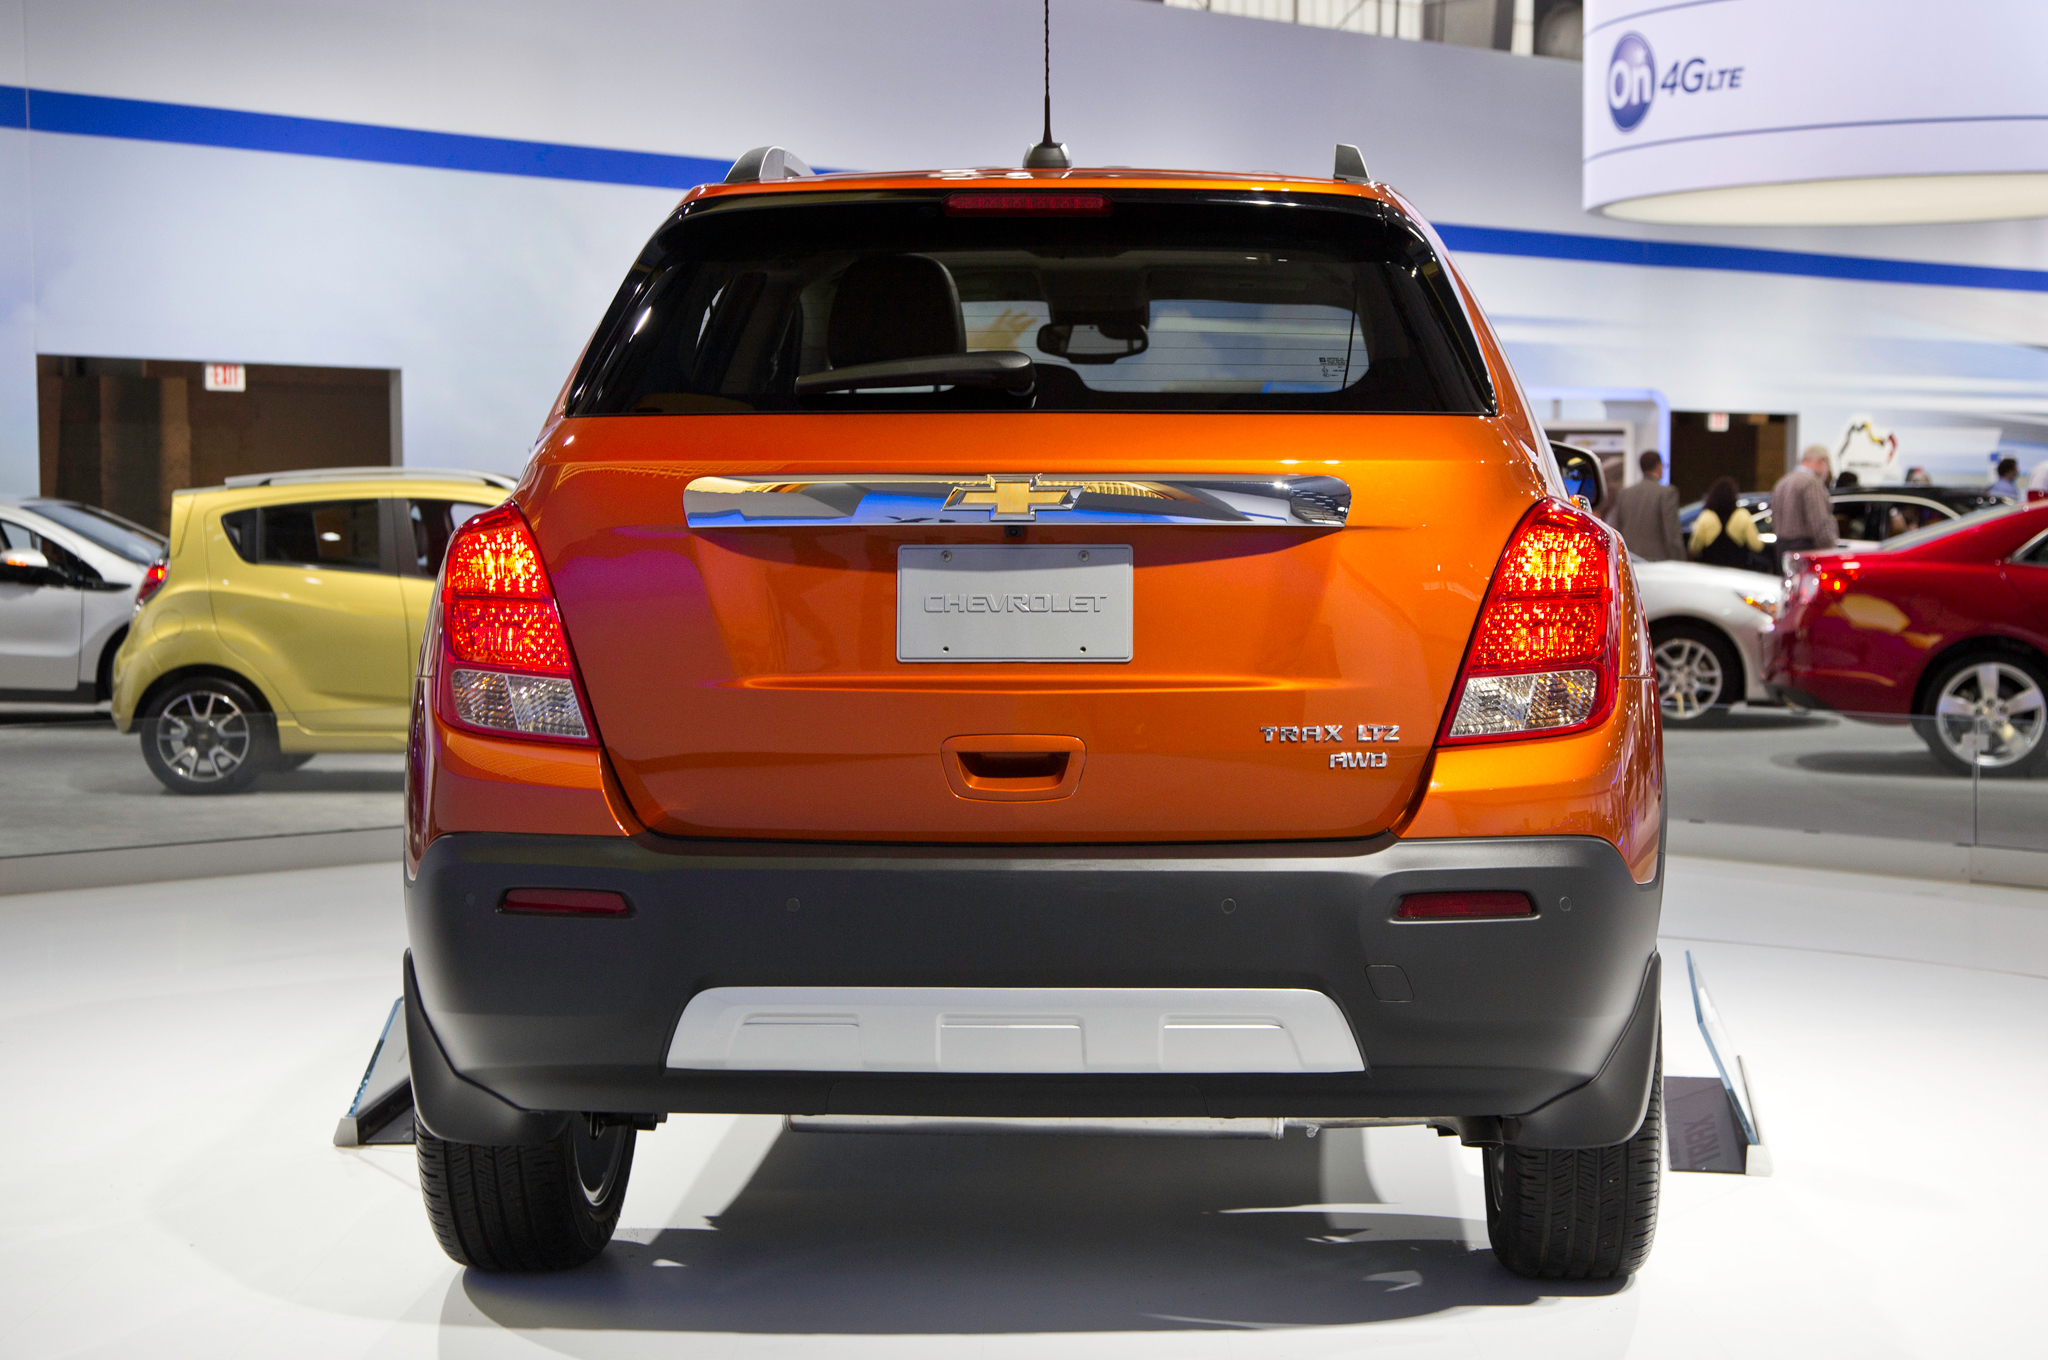 2015 Chevrolet Trax Rear Design (Photo 6 of 8)